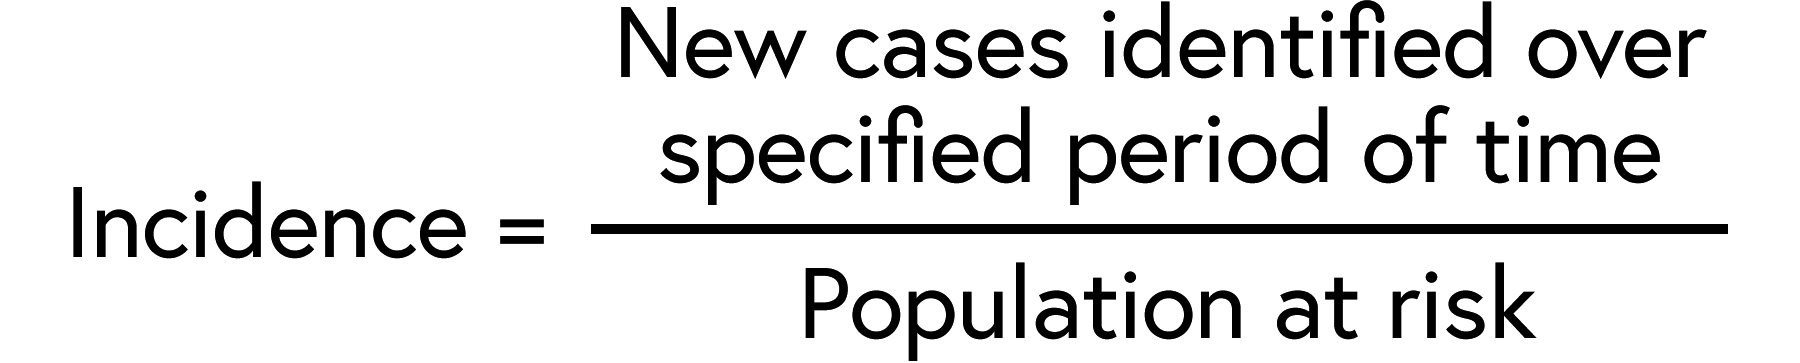 Incidence definition